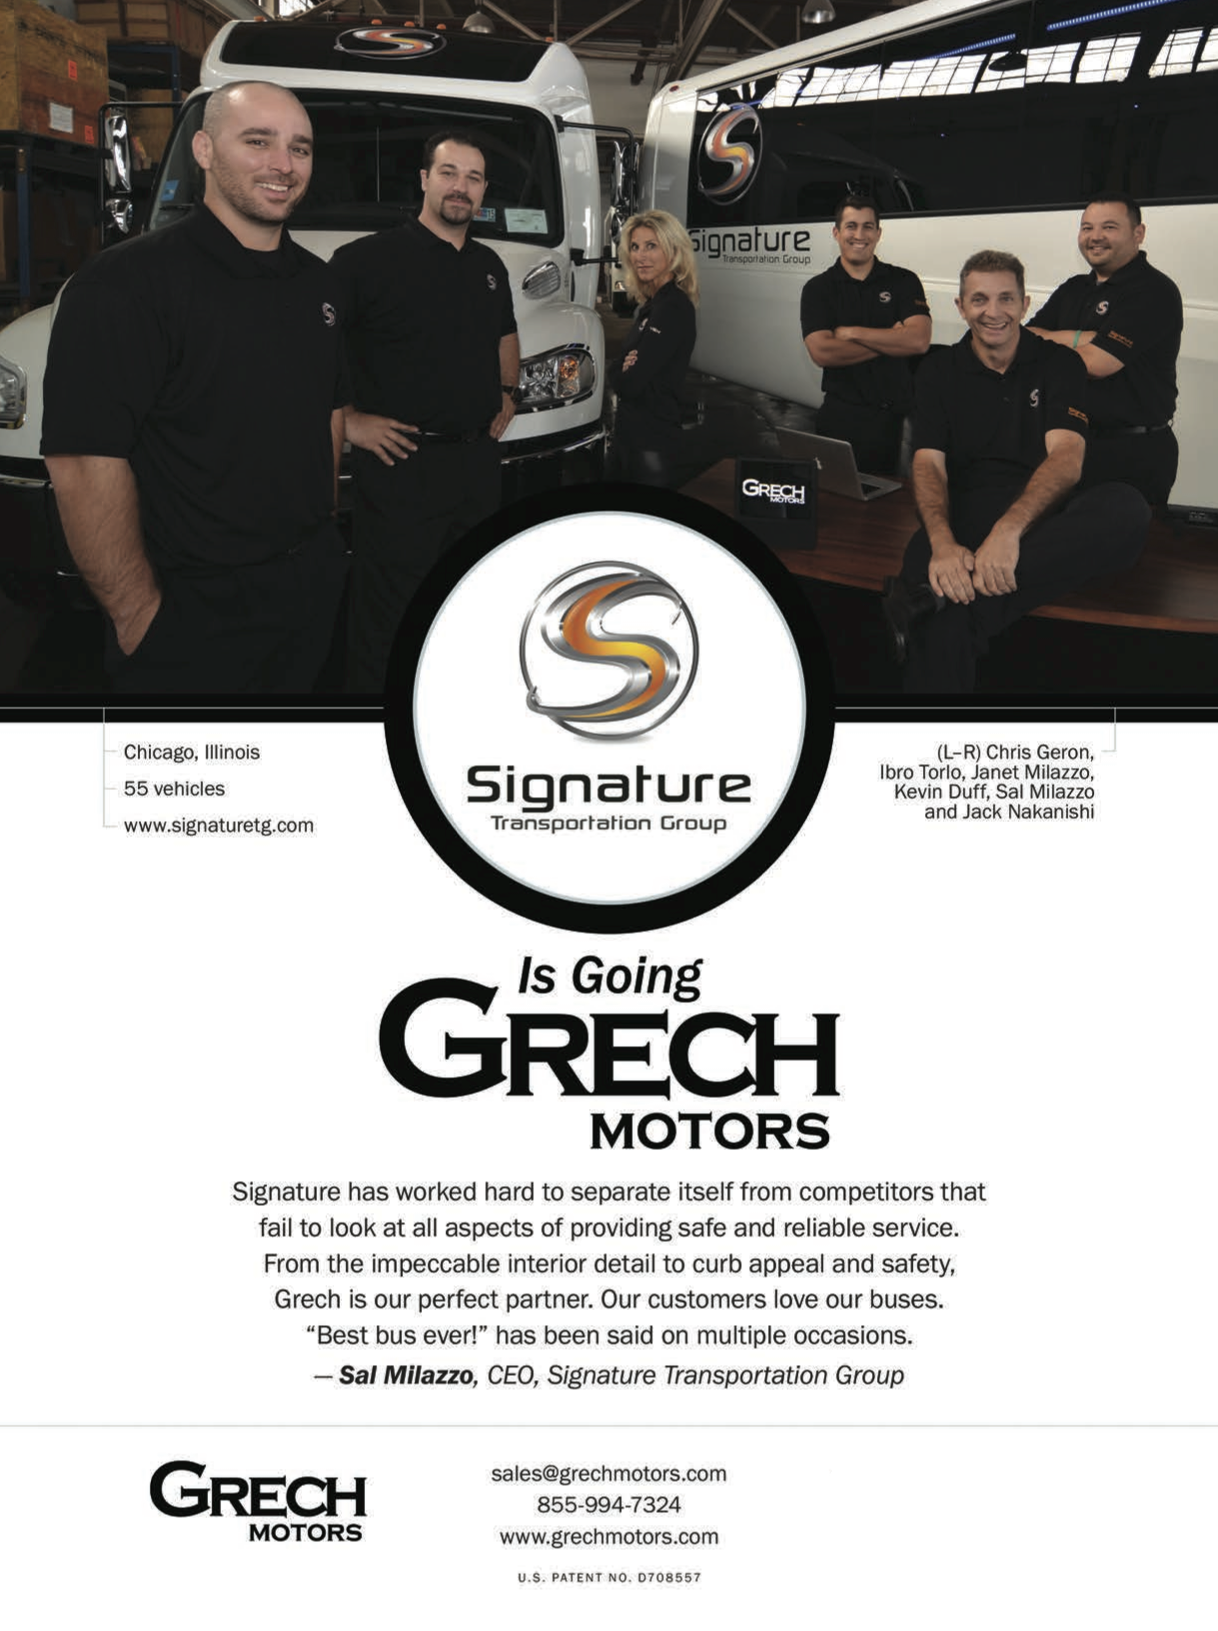 1214 Going Grech fp Signature Transp Group CD1214-new lr WEBSITE.png